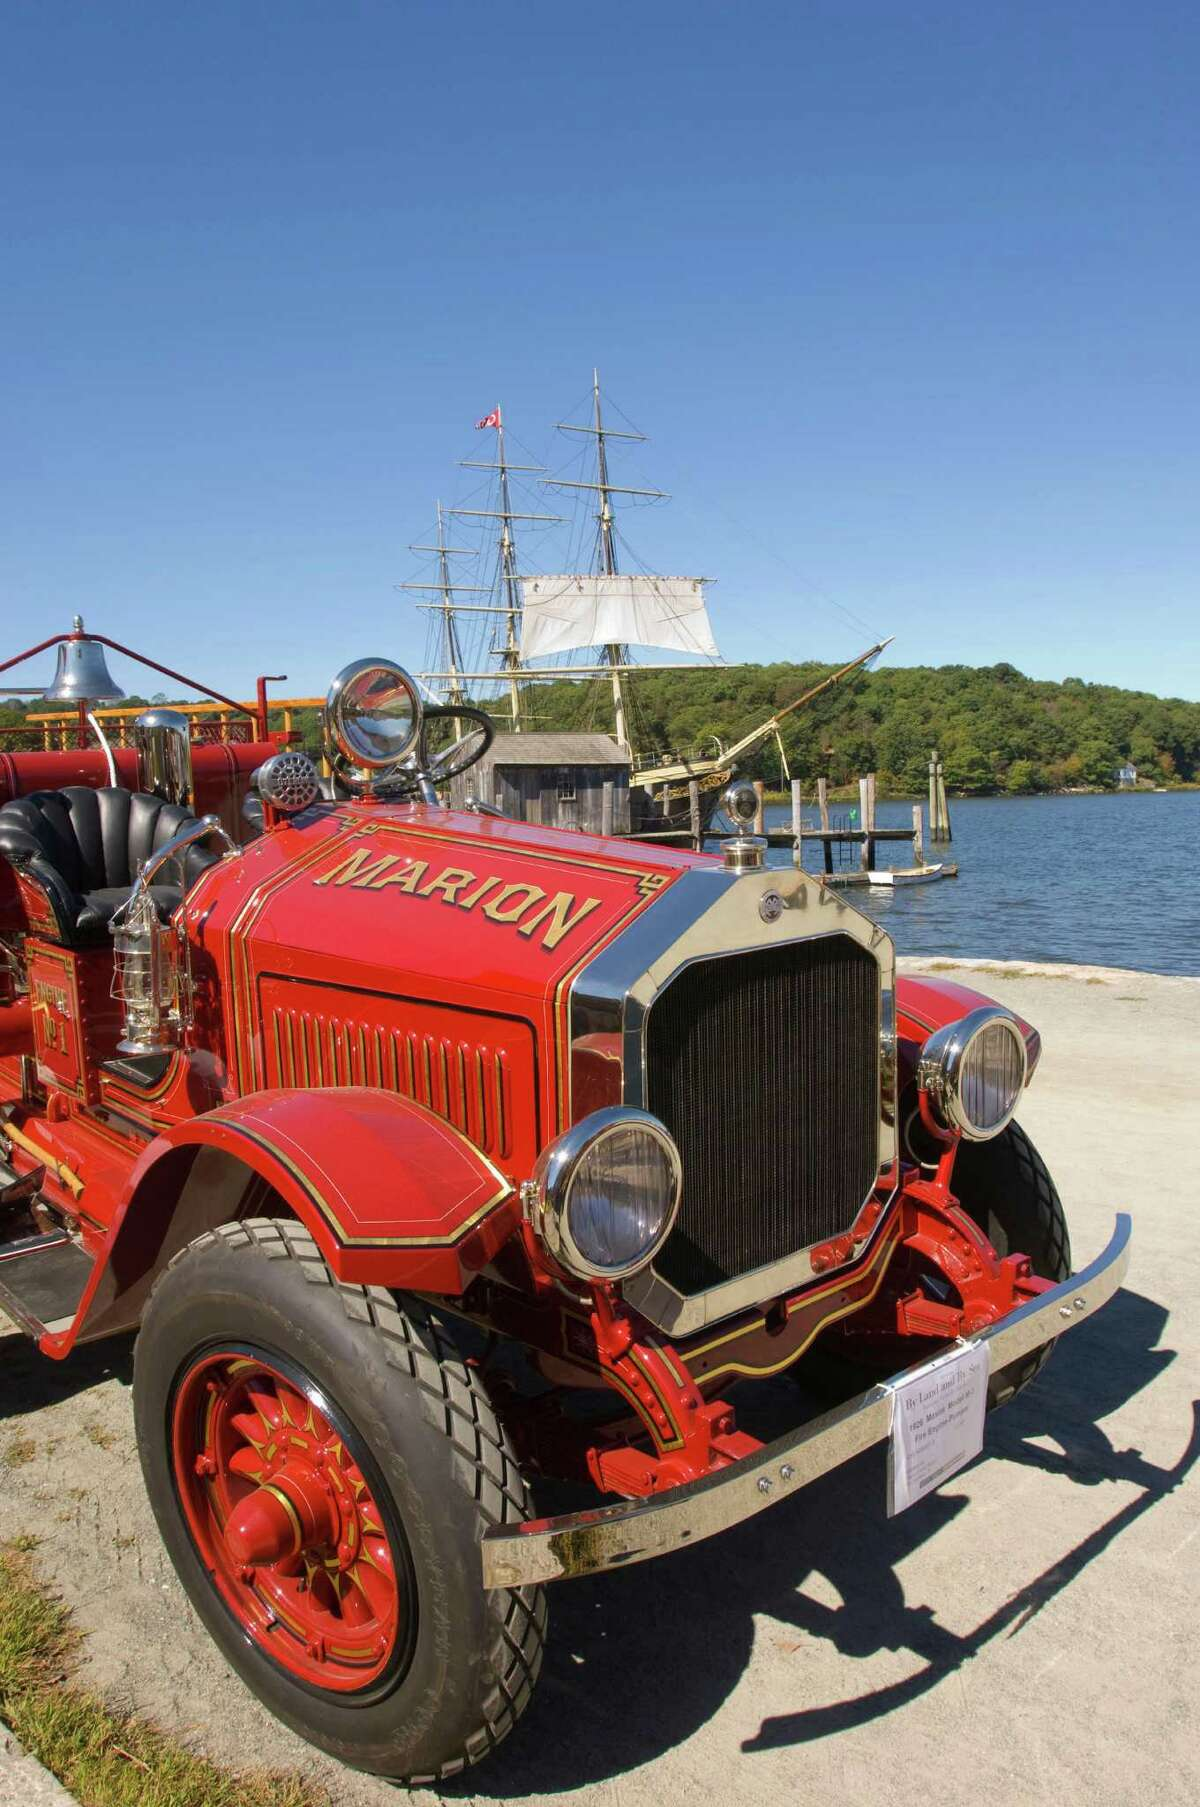 On May 30-31, Mystic Seaport will present a display of antique fire-fighting equipment, and offer numerous programs on summer vacation saftey concerns.